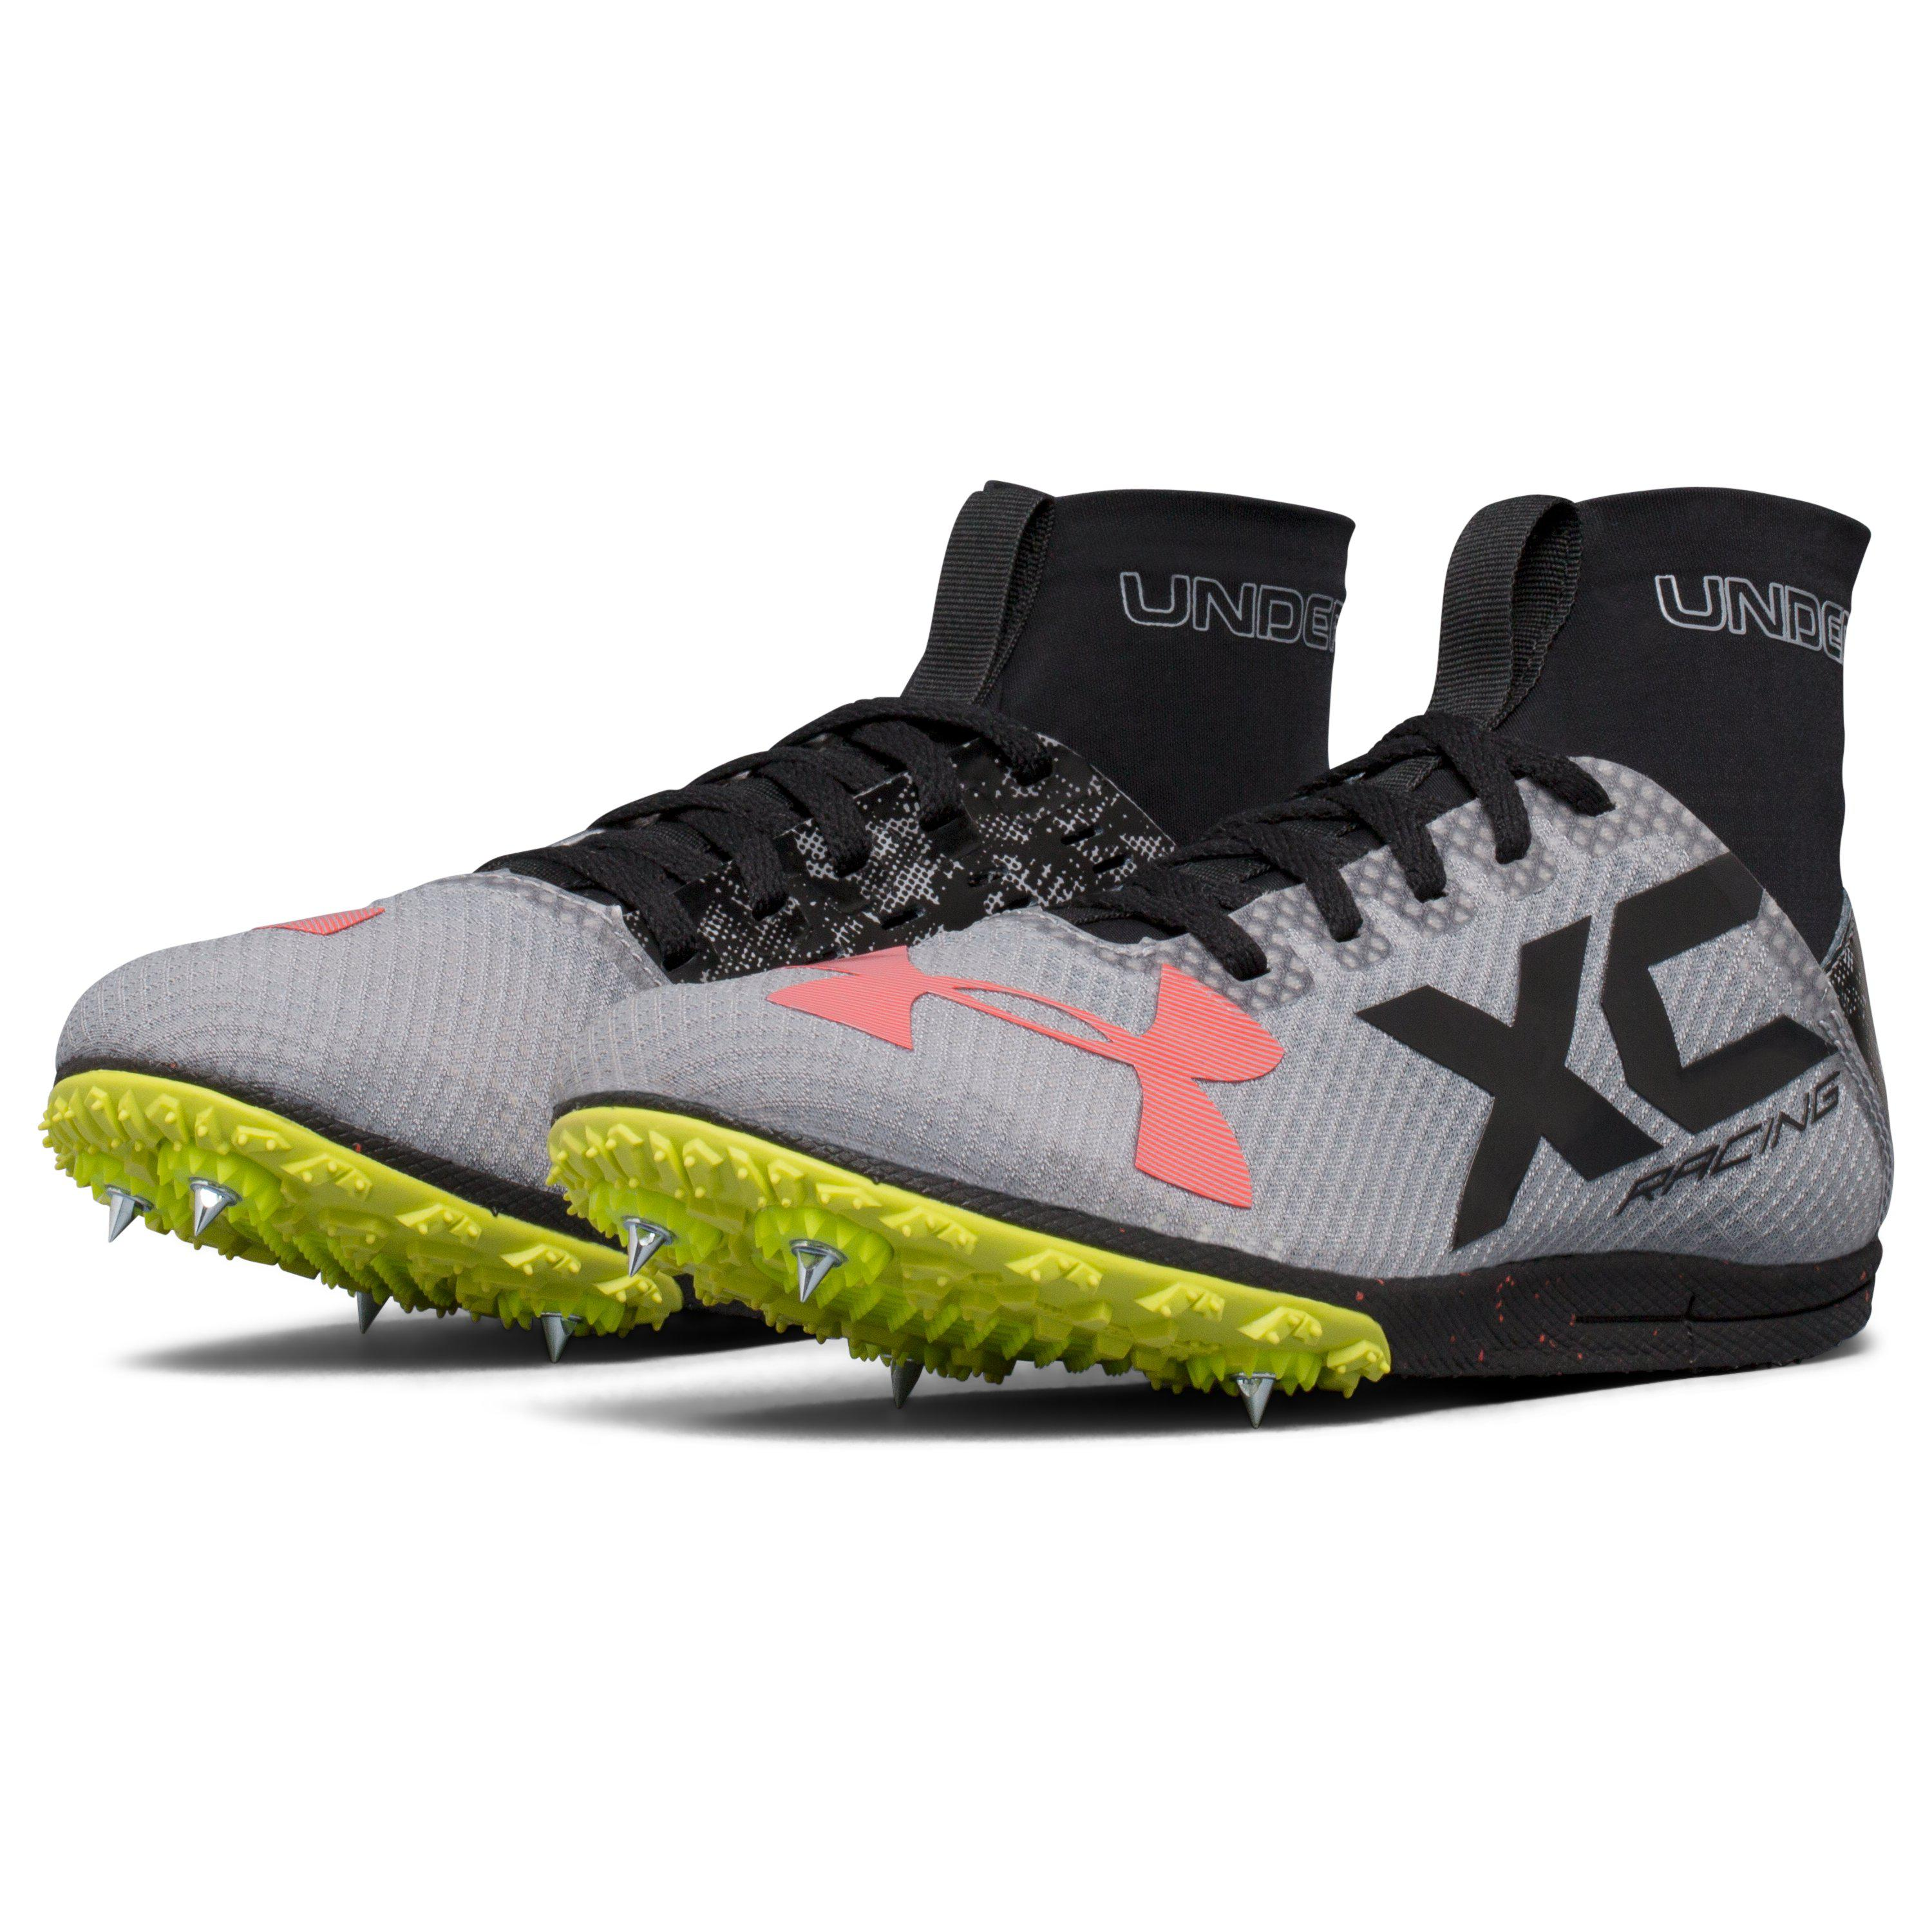 a862d52586 Under Armour Black Bandit Xc Spike Running Shoes Size for men